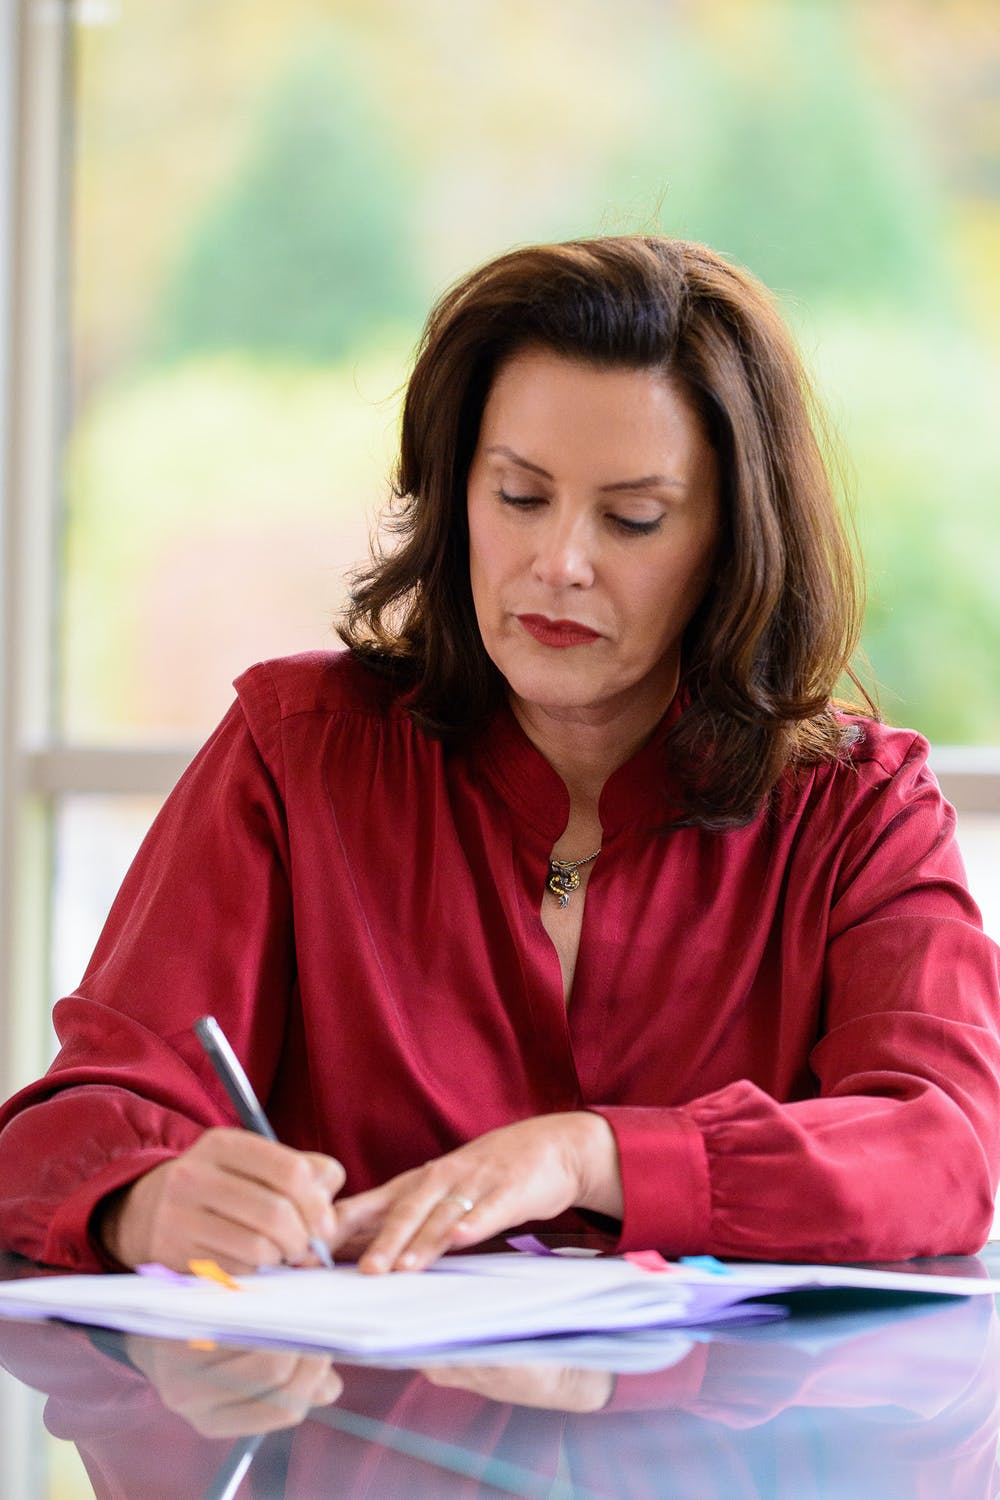 <p>Gov. Gretchen Whitmer signs bipartisan bills extending unemployment benefits to 26 weeks on Oct. 20, 2020. Courtesy photo provided by Michigan Executive Office of the Governor.</p>